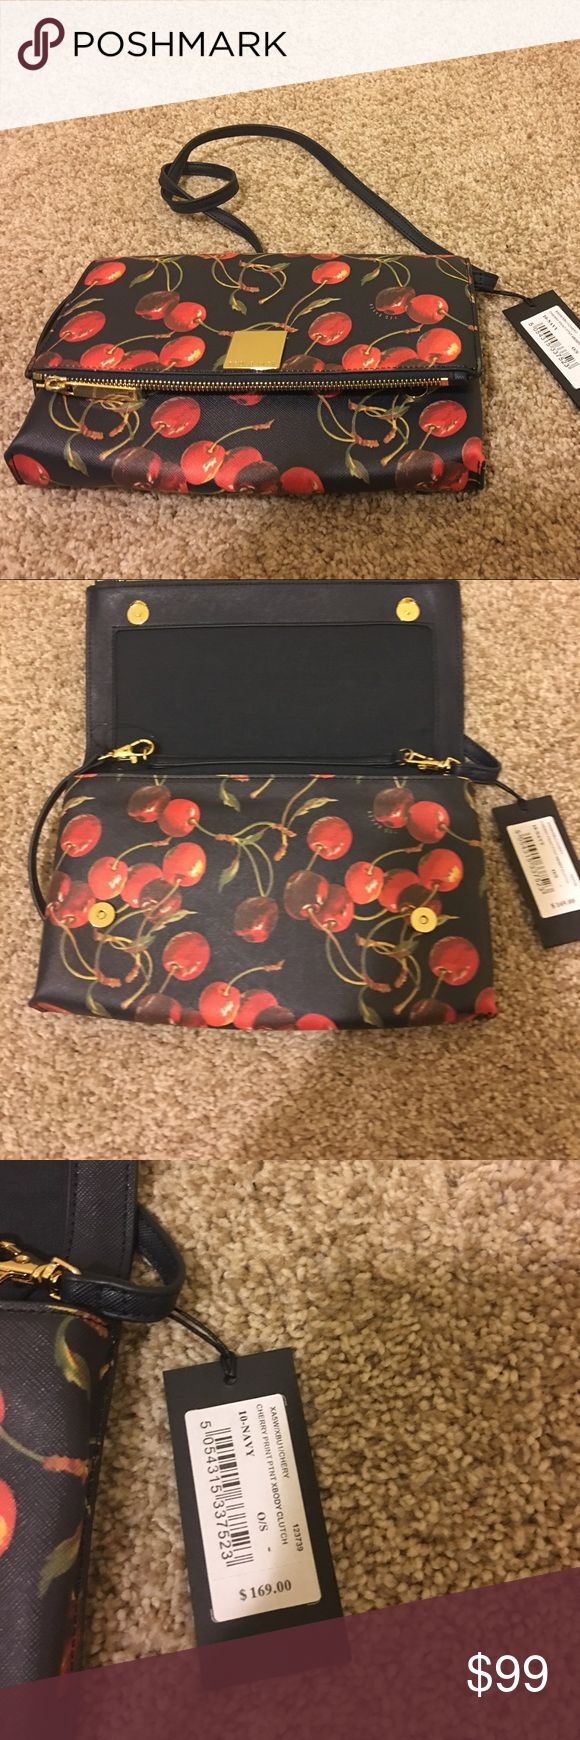 Ted Bake London Cherry Handbag w/ Duster NWT Ted Bake London Cherry Handbag w/ Duster NWT, never got around to using.  I have matching cherry dress in size 3 that I will post at a later date or ask me about it. Ted Baker London Bags Mini Bags